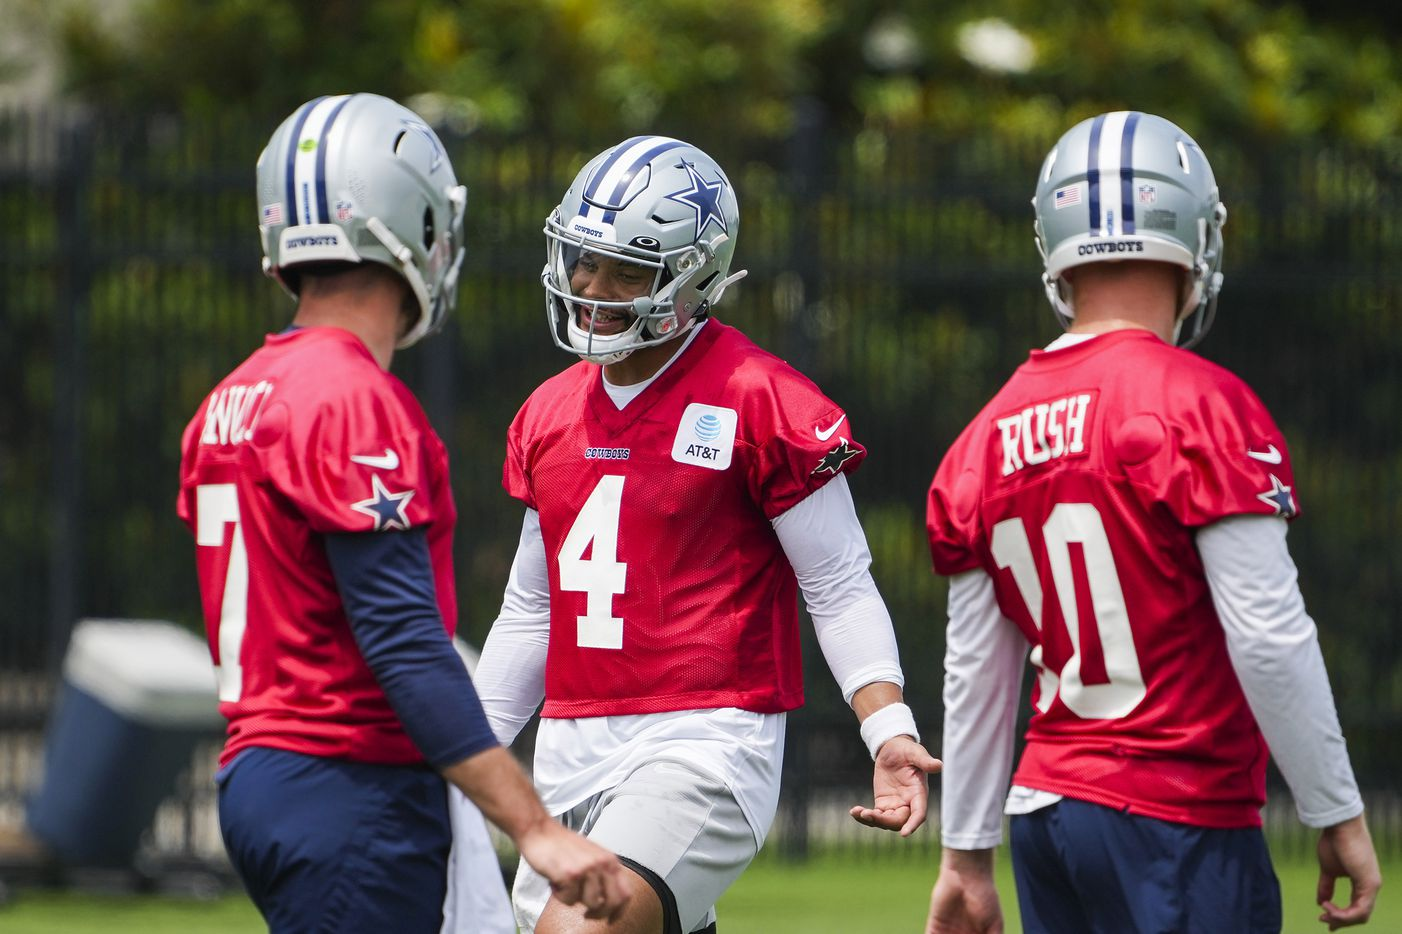 Dallas Cowboys quarterback Dak Prescott (4) laughs with fellow quarterbacks Ben DiNucci (7) and Cooper Rush (10) during a minicamp practice at The Star on Tuesday, June 8, 2021, in Frisco. (Smiley N. Pool/The Dallas Morning News)